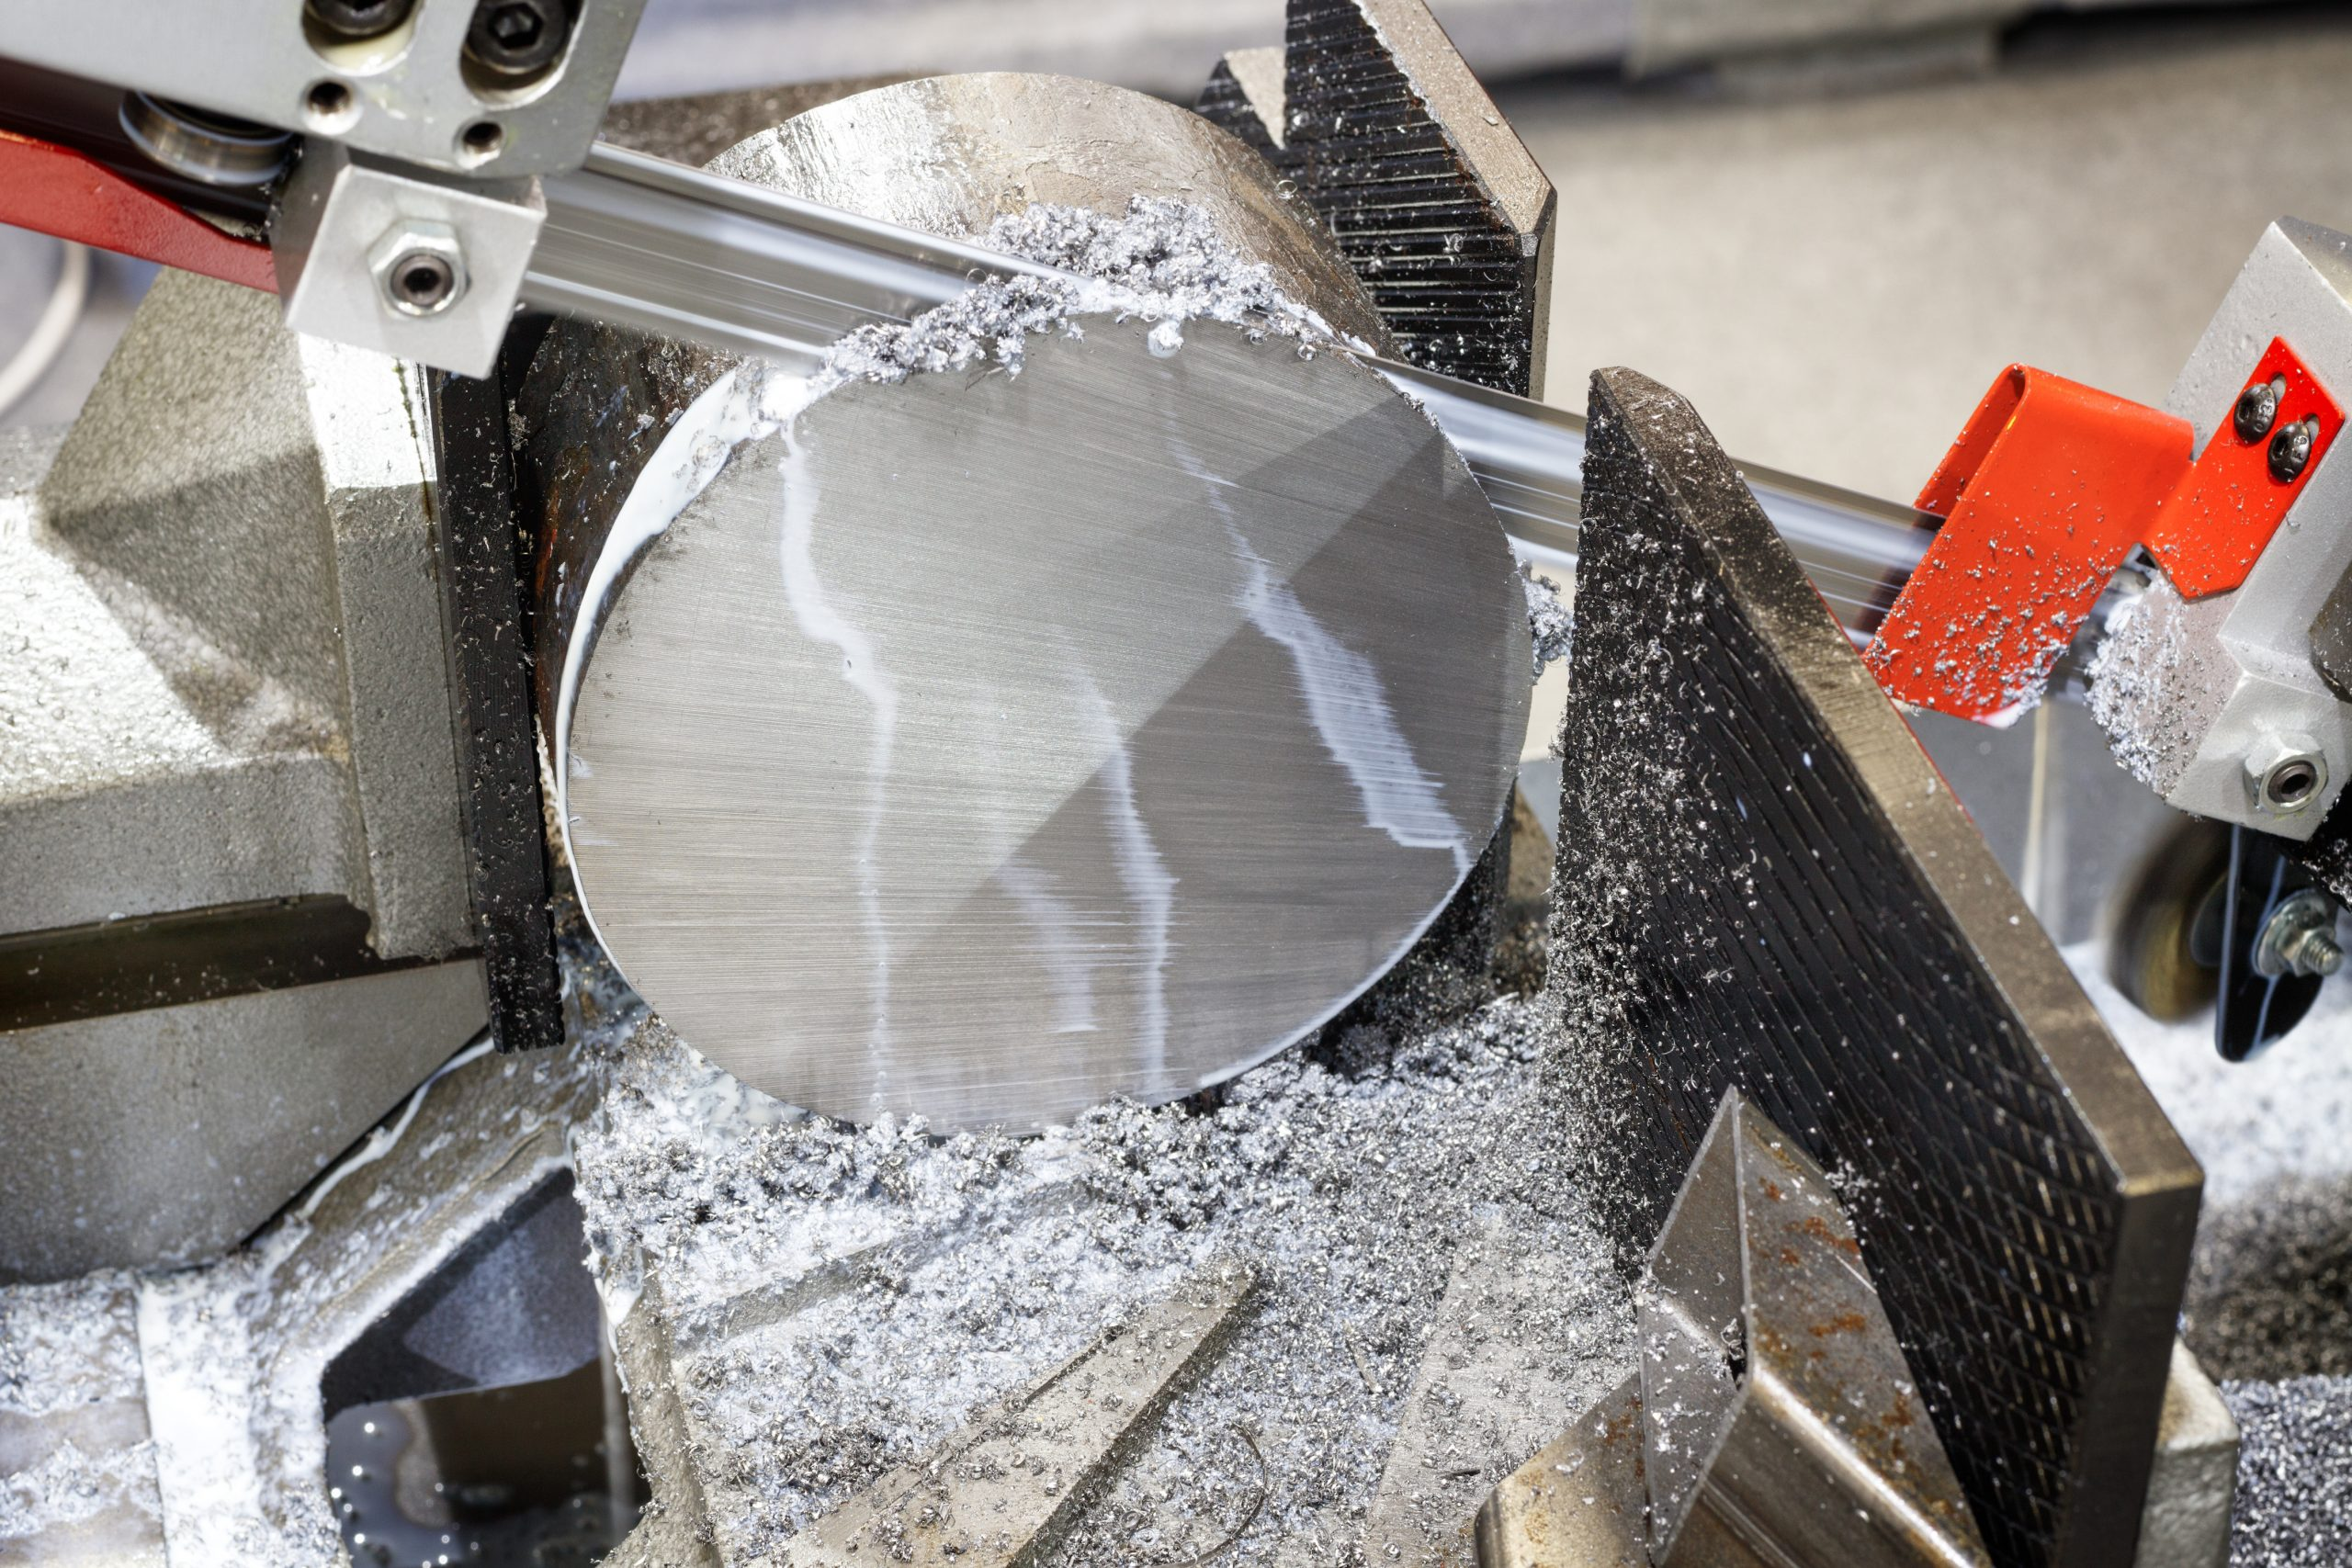 industrial metal machining cutting process of blank detail by mechanical electrical saw